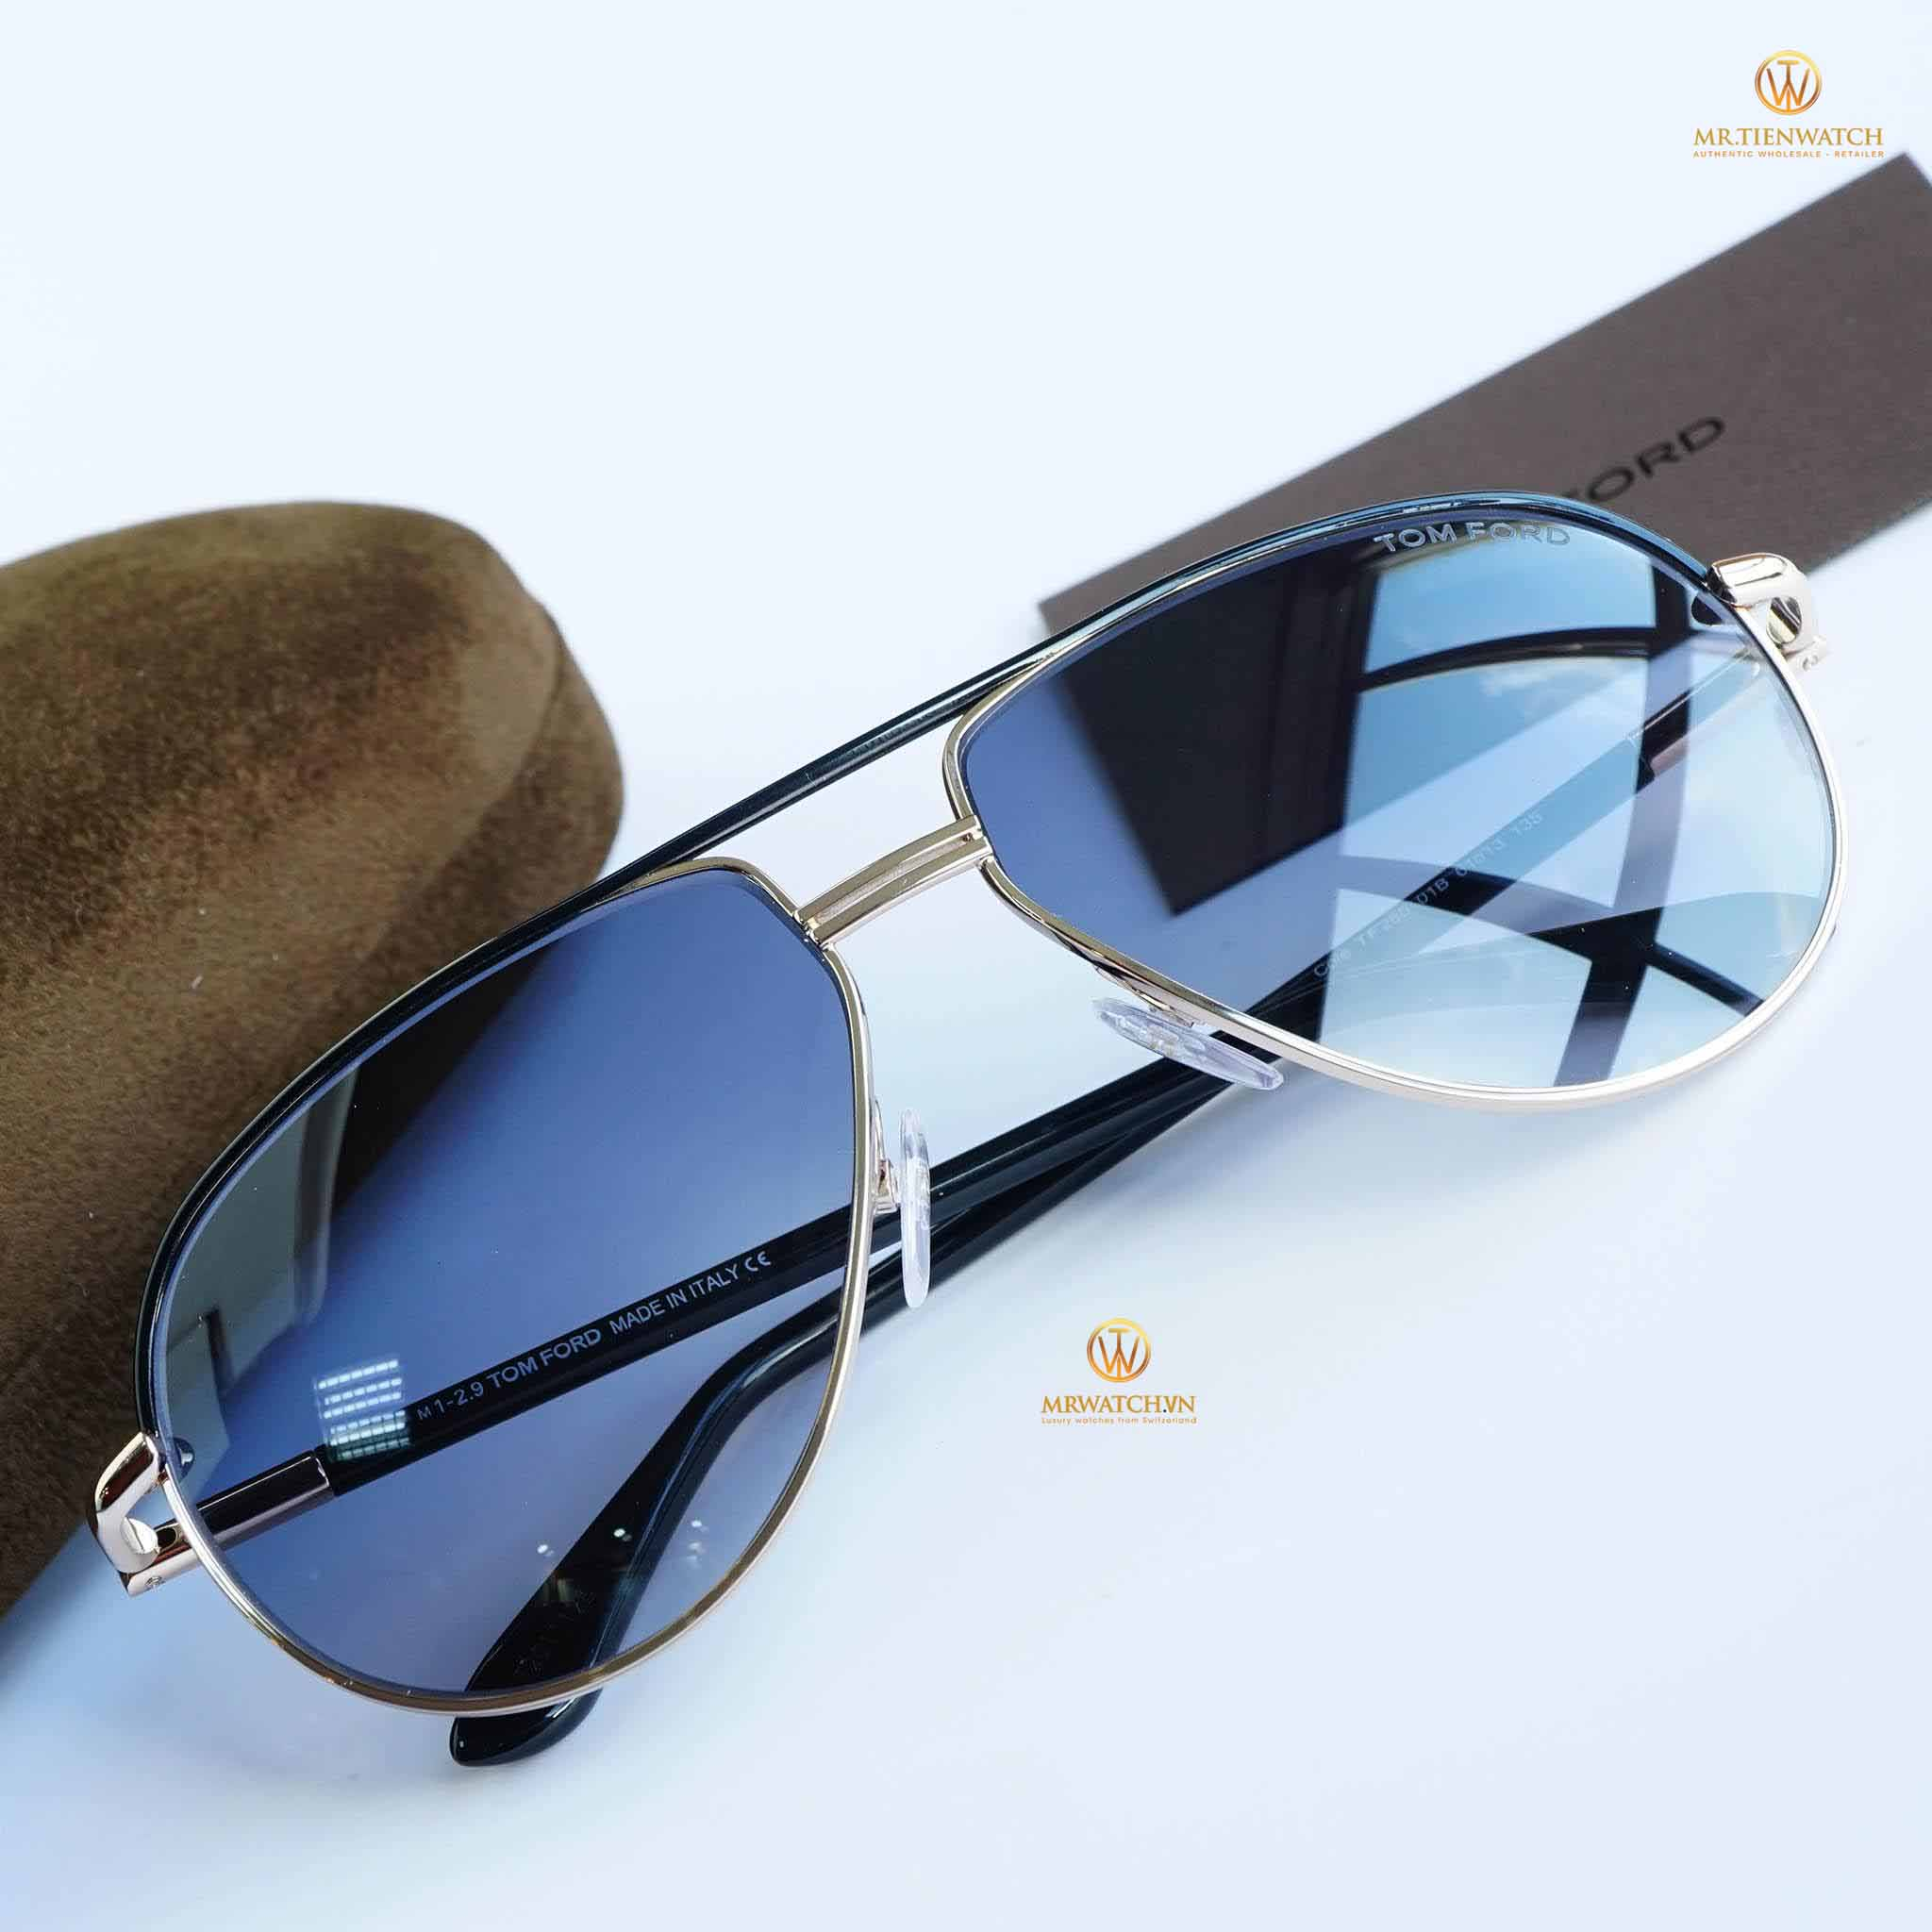 Tom Ford 2016 Aviator 0285 black gold light blue - TF FT 0285 01B